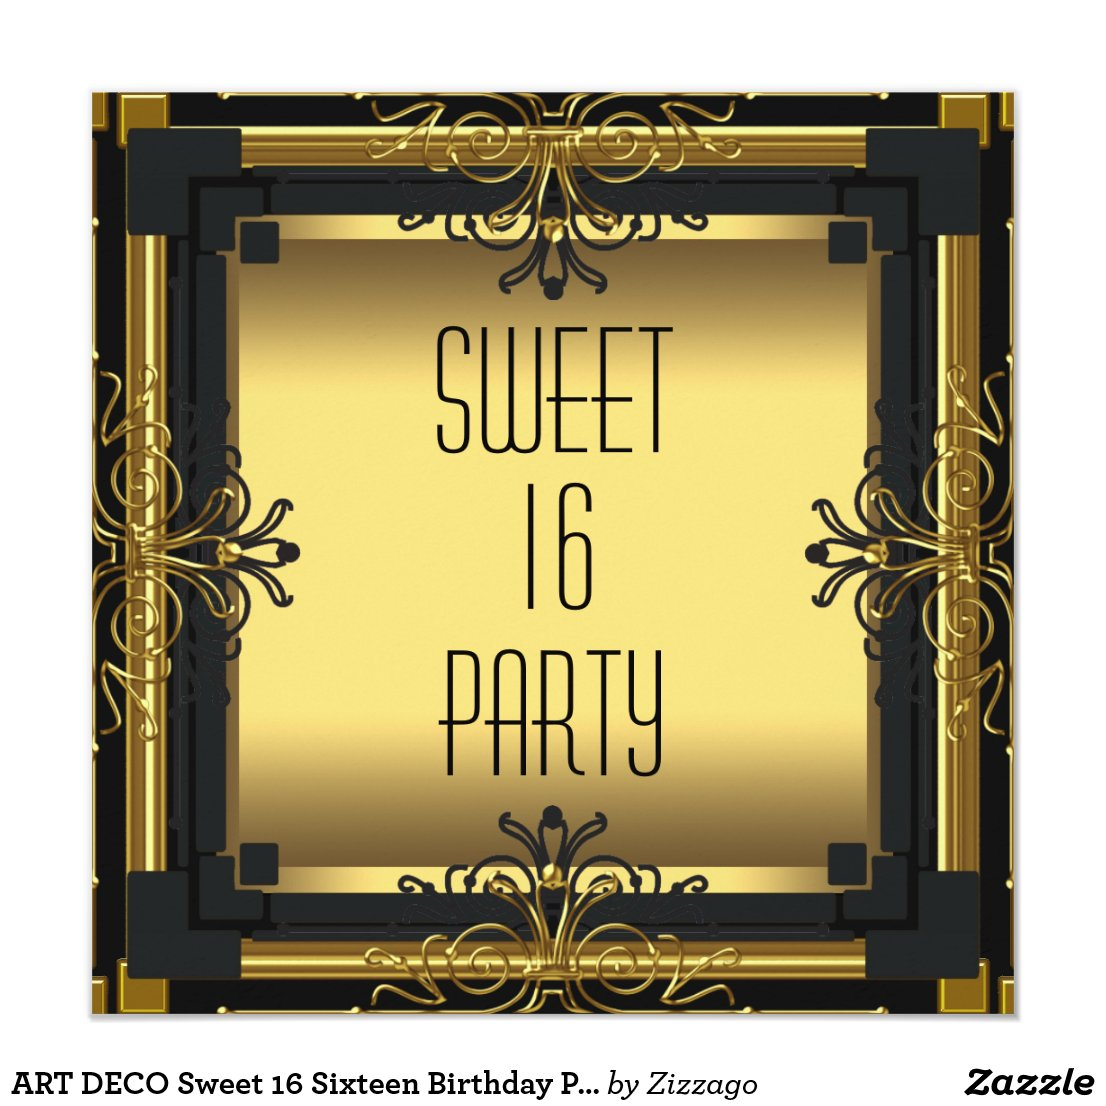 ART DECO Sweet 16 Sixteen Birthday Party Card